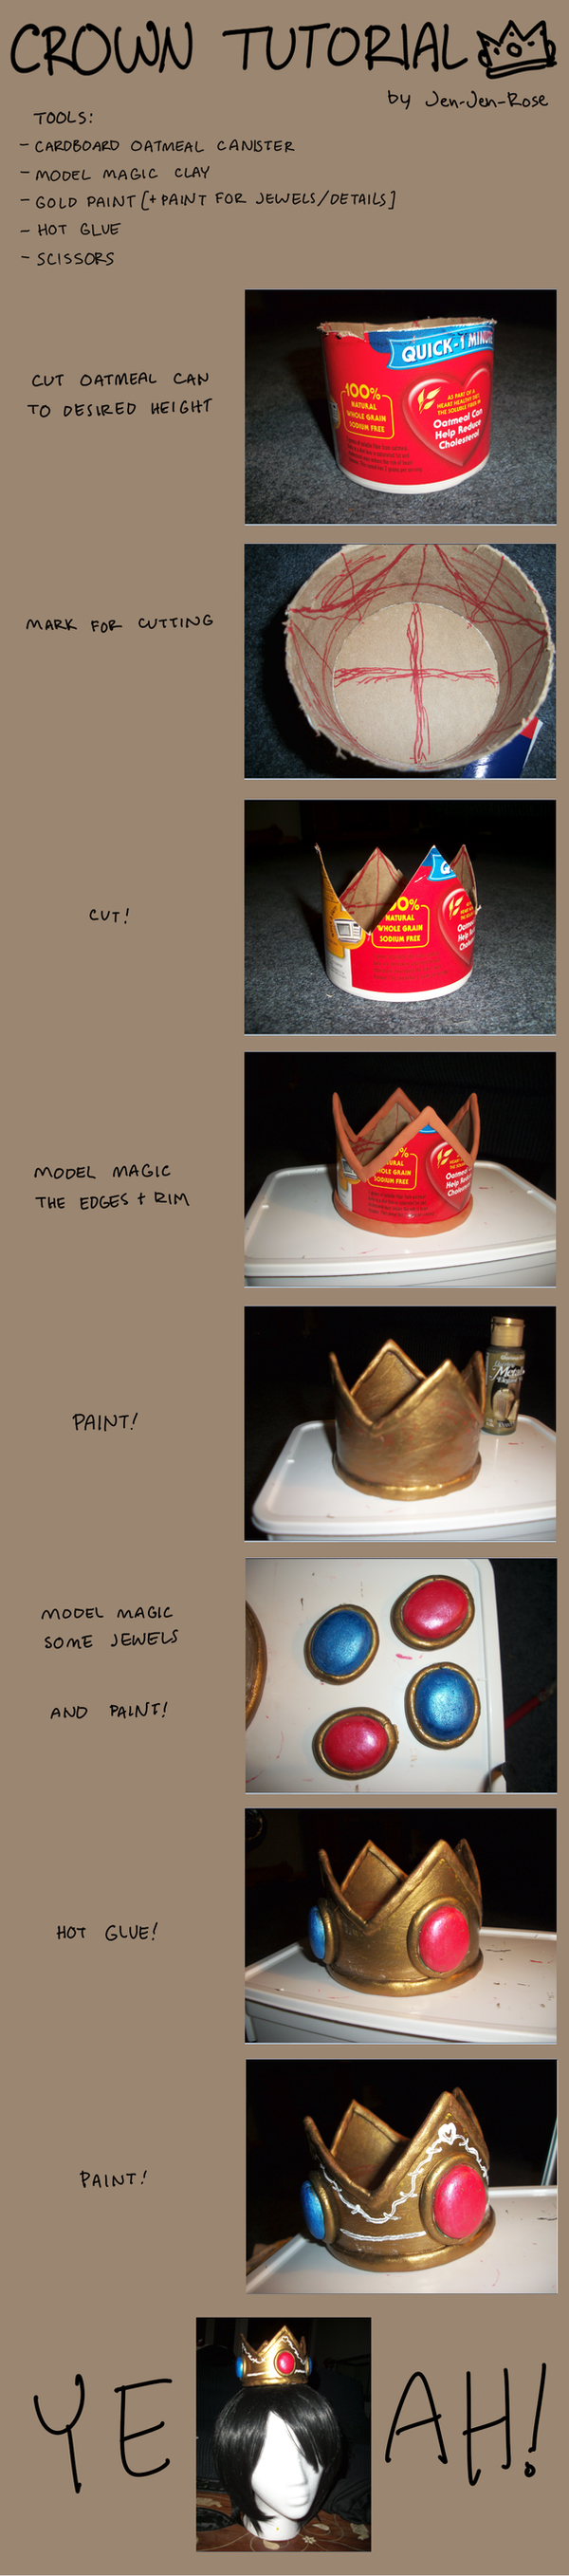 Crown Tutorial by Jen-Jen-Rose